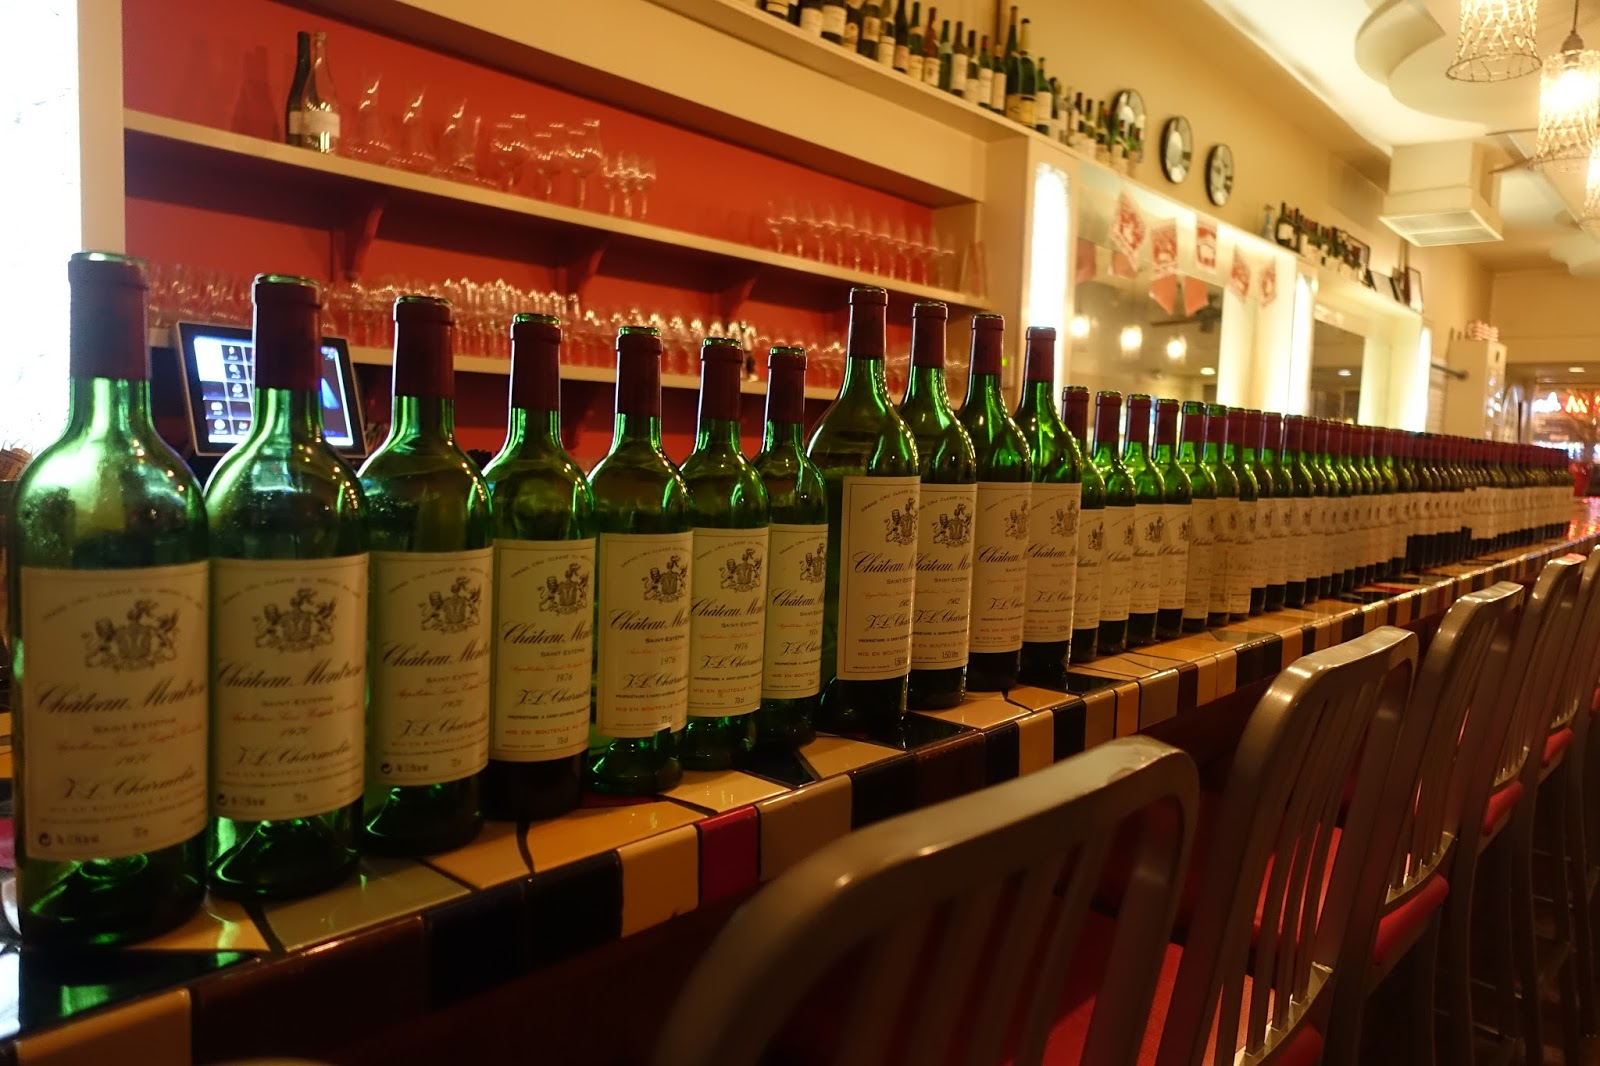 Schiller wine massive ch teau montrose vertical with for Chateau montrose